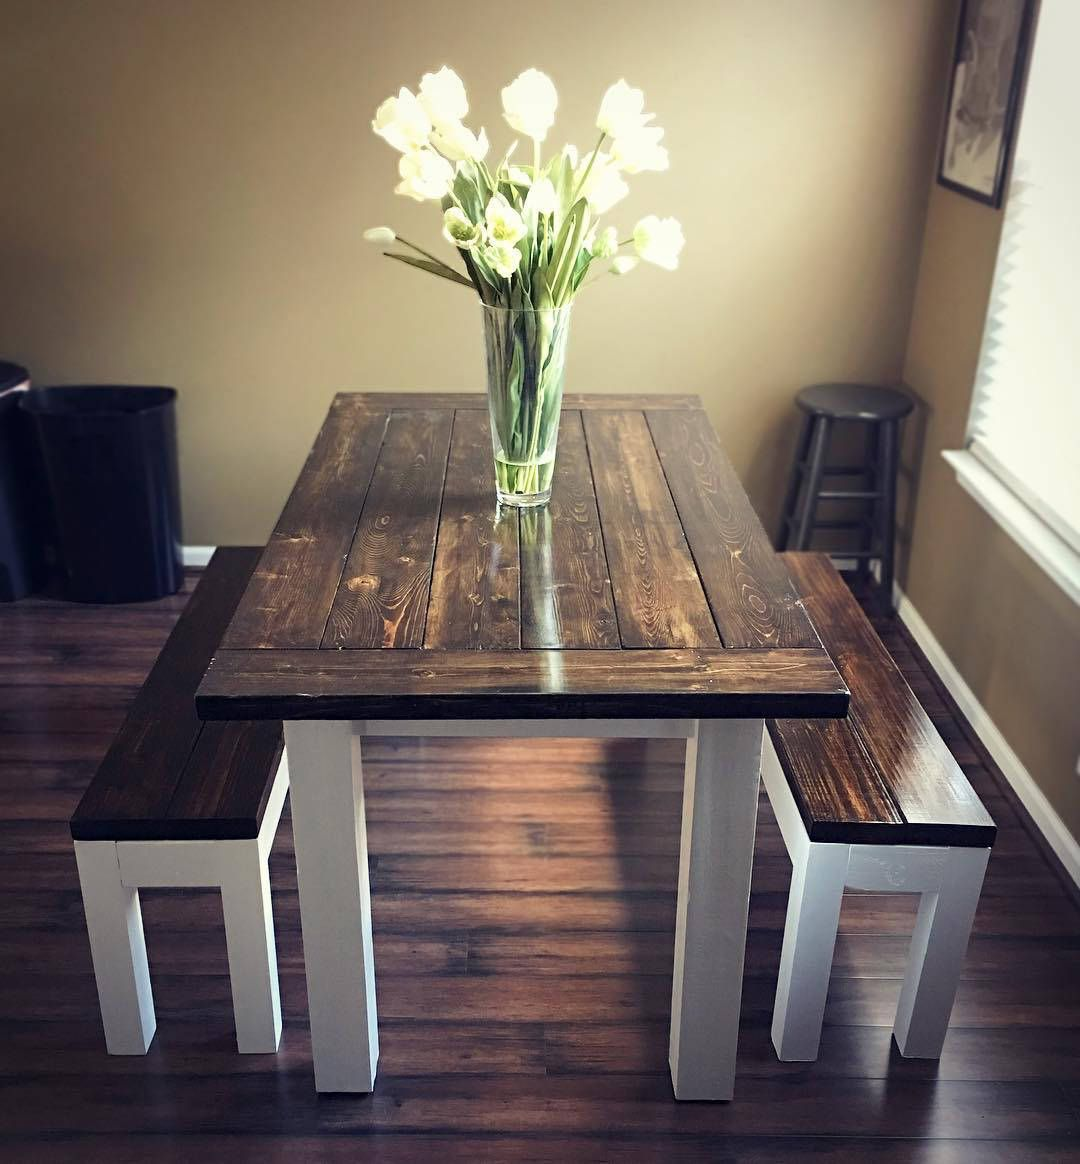 Buy a Handmade Farmhouse Dining Table - Handcrafted Rustic ...